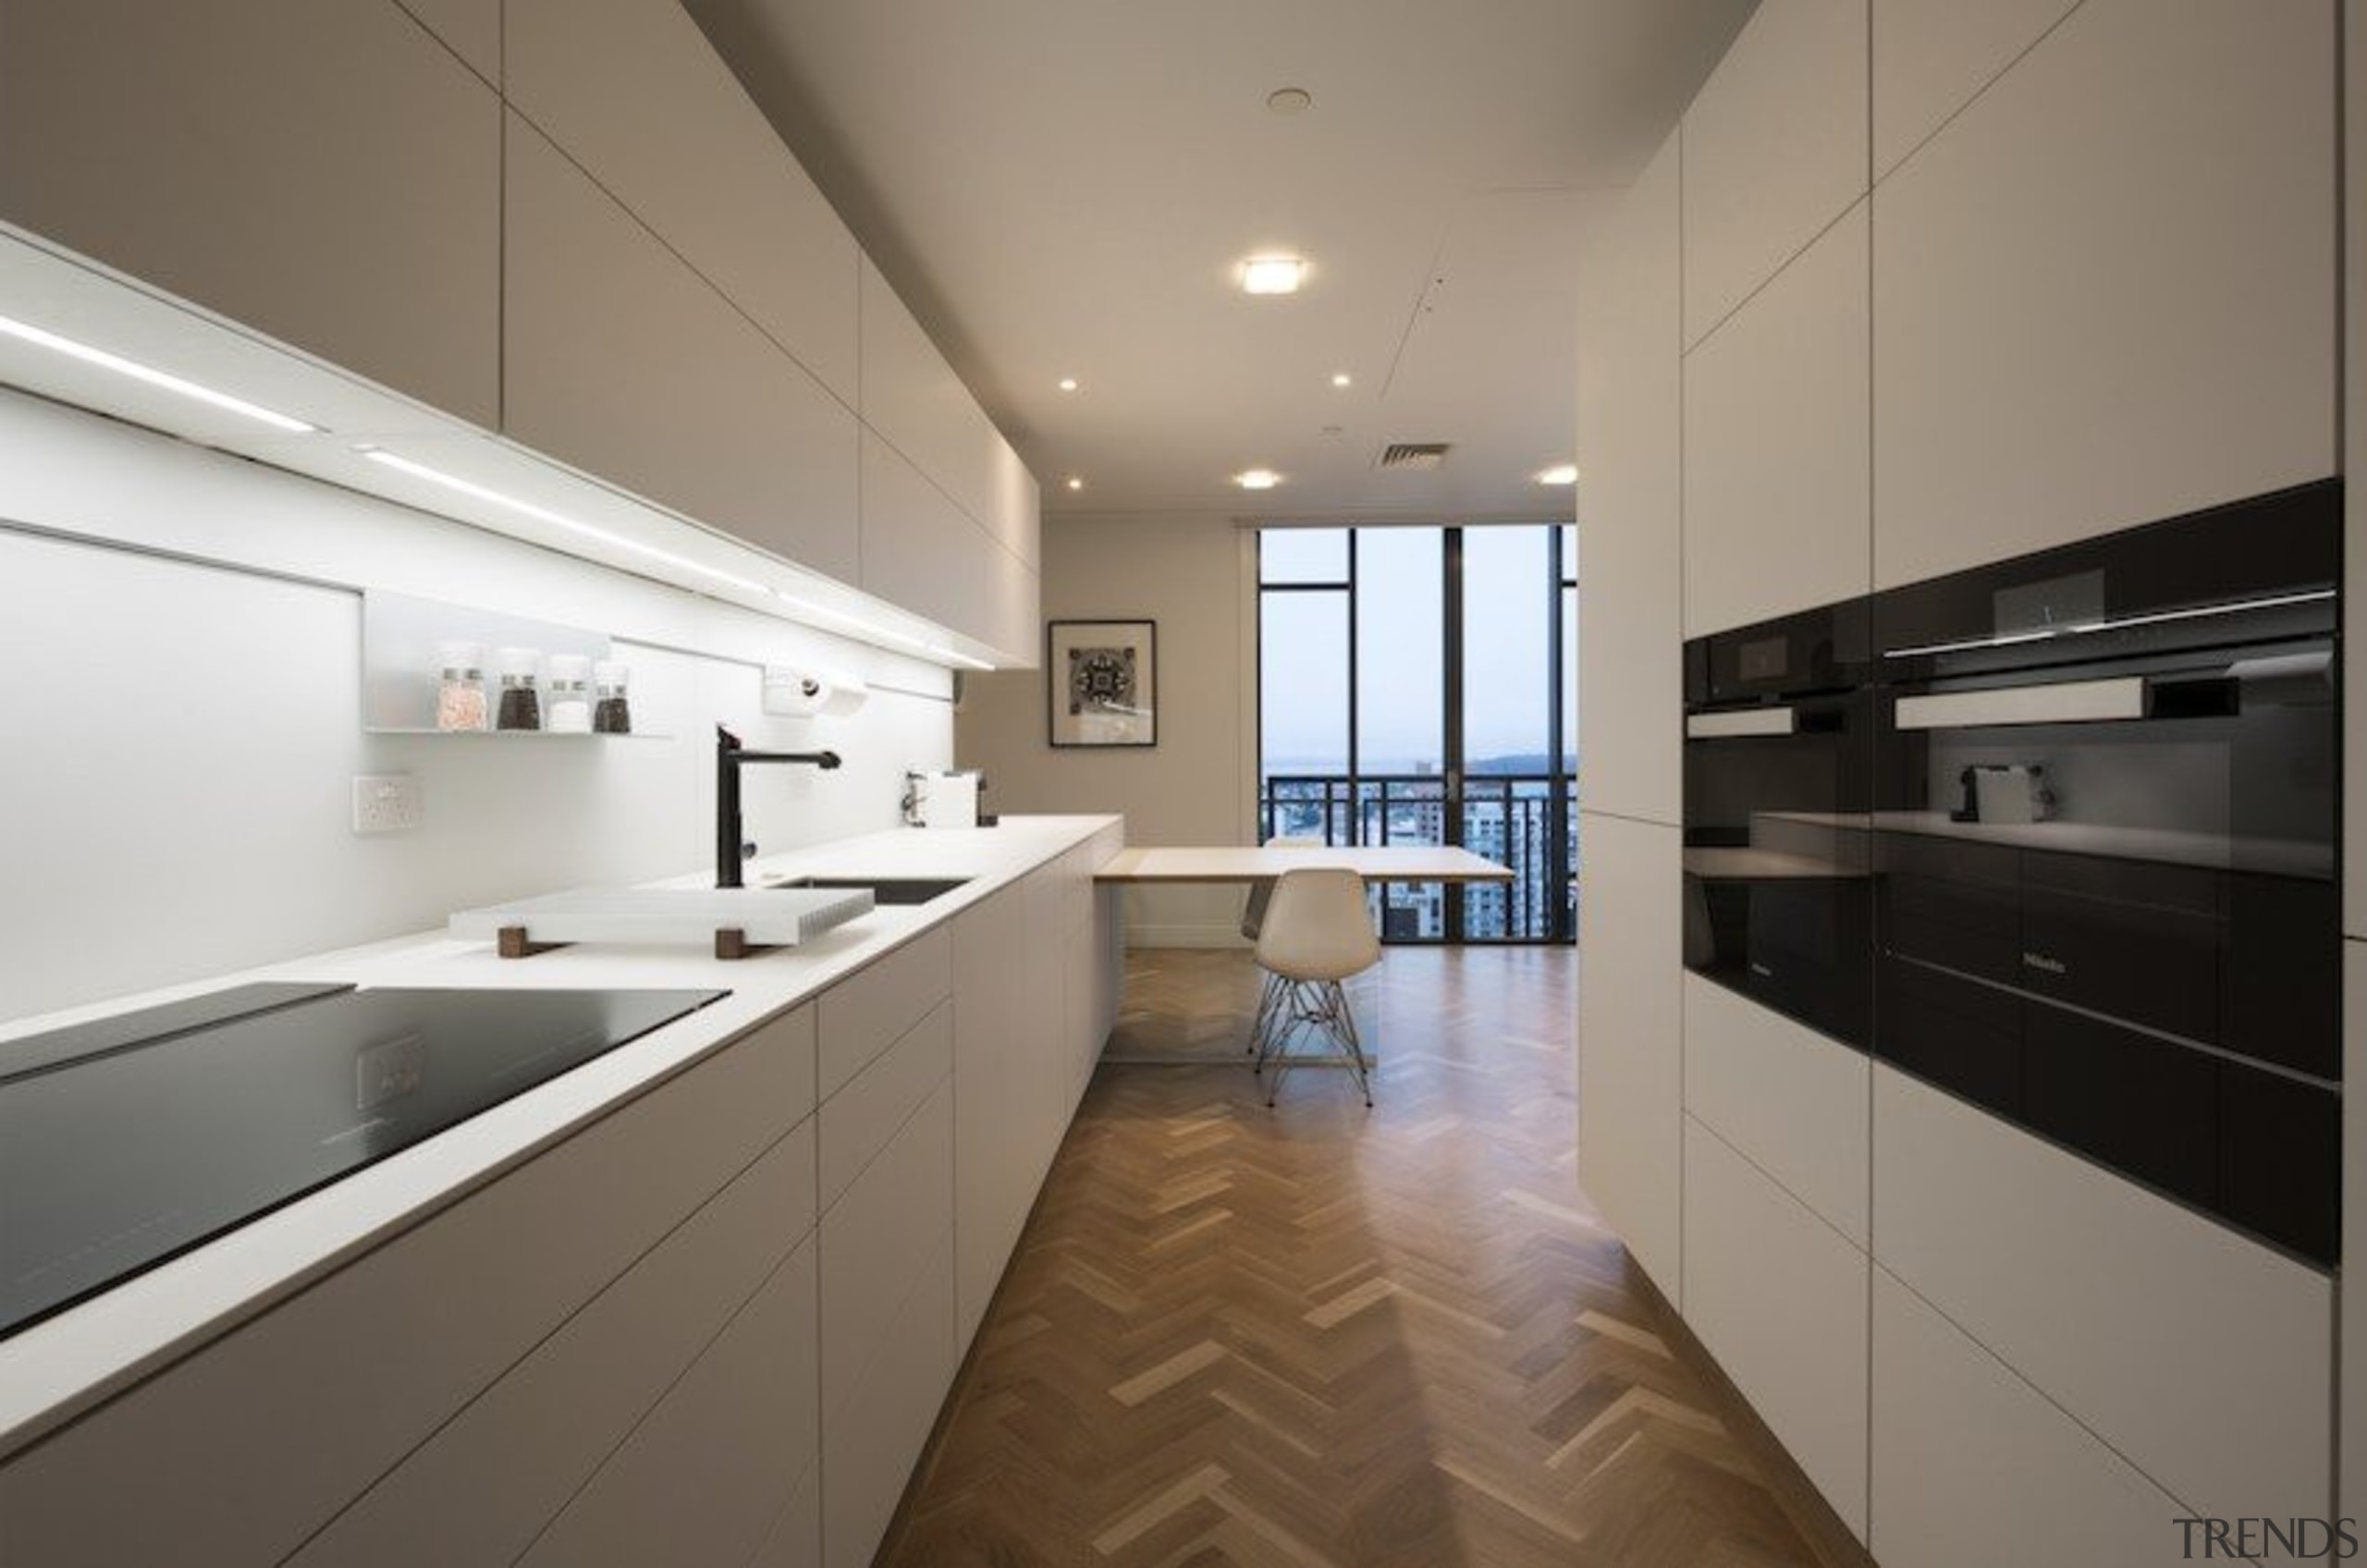 Highly Commended in the Category Imported Kitchen - apartment, architecture, cabinetry, countertop, cuisine classique, floor, house, interior design, kitchen, property, real estate, room, gray